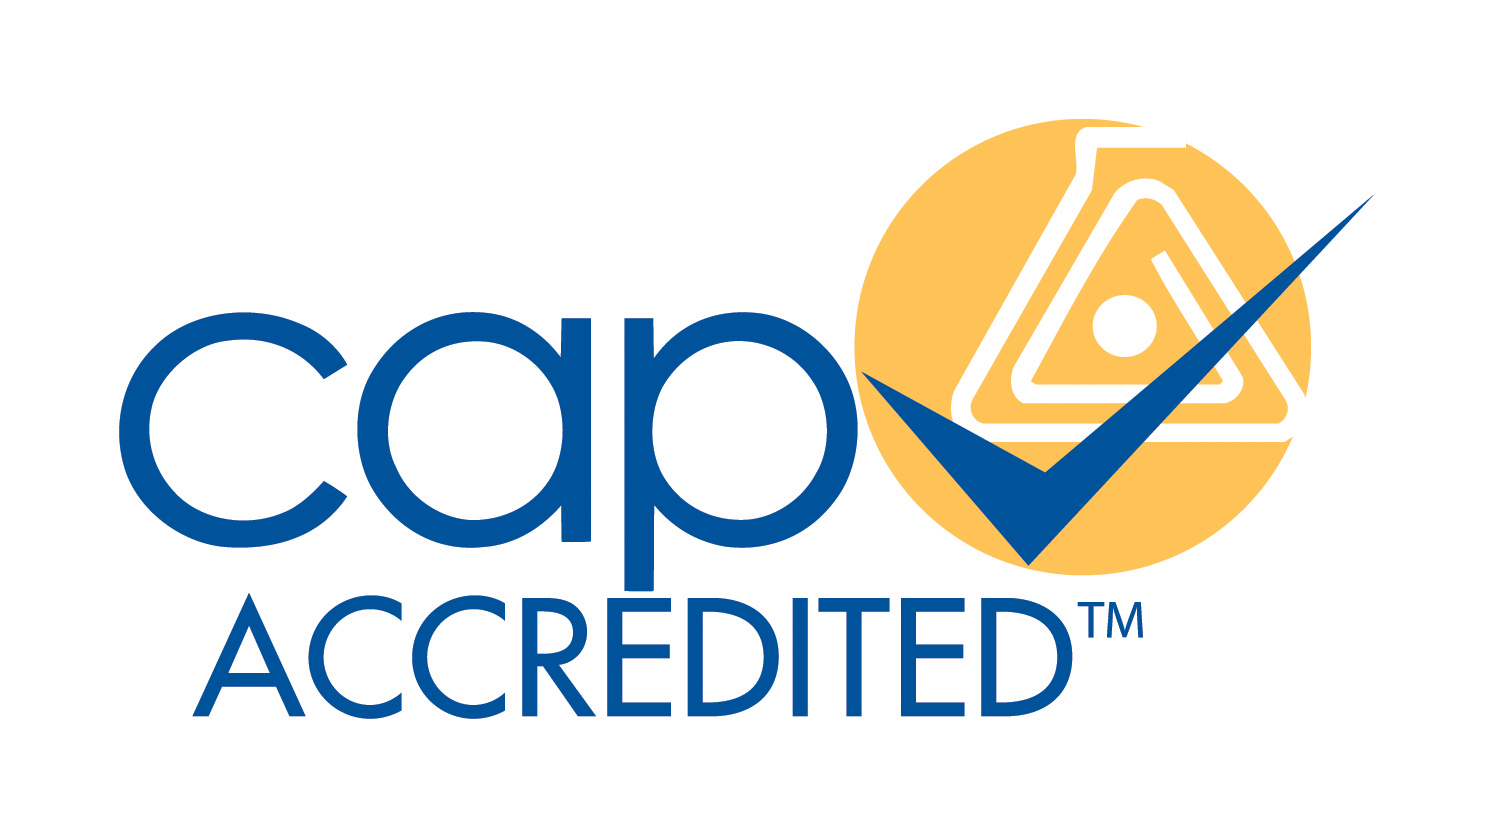 Aegis Sciences Corporation Receives Accreditation from College of American Pathologists (CAP)